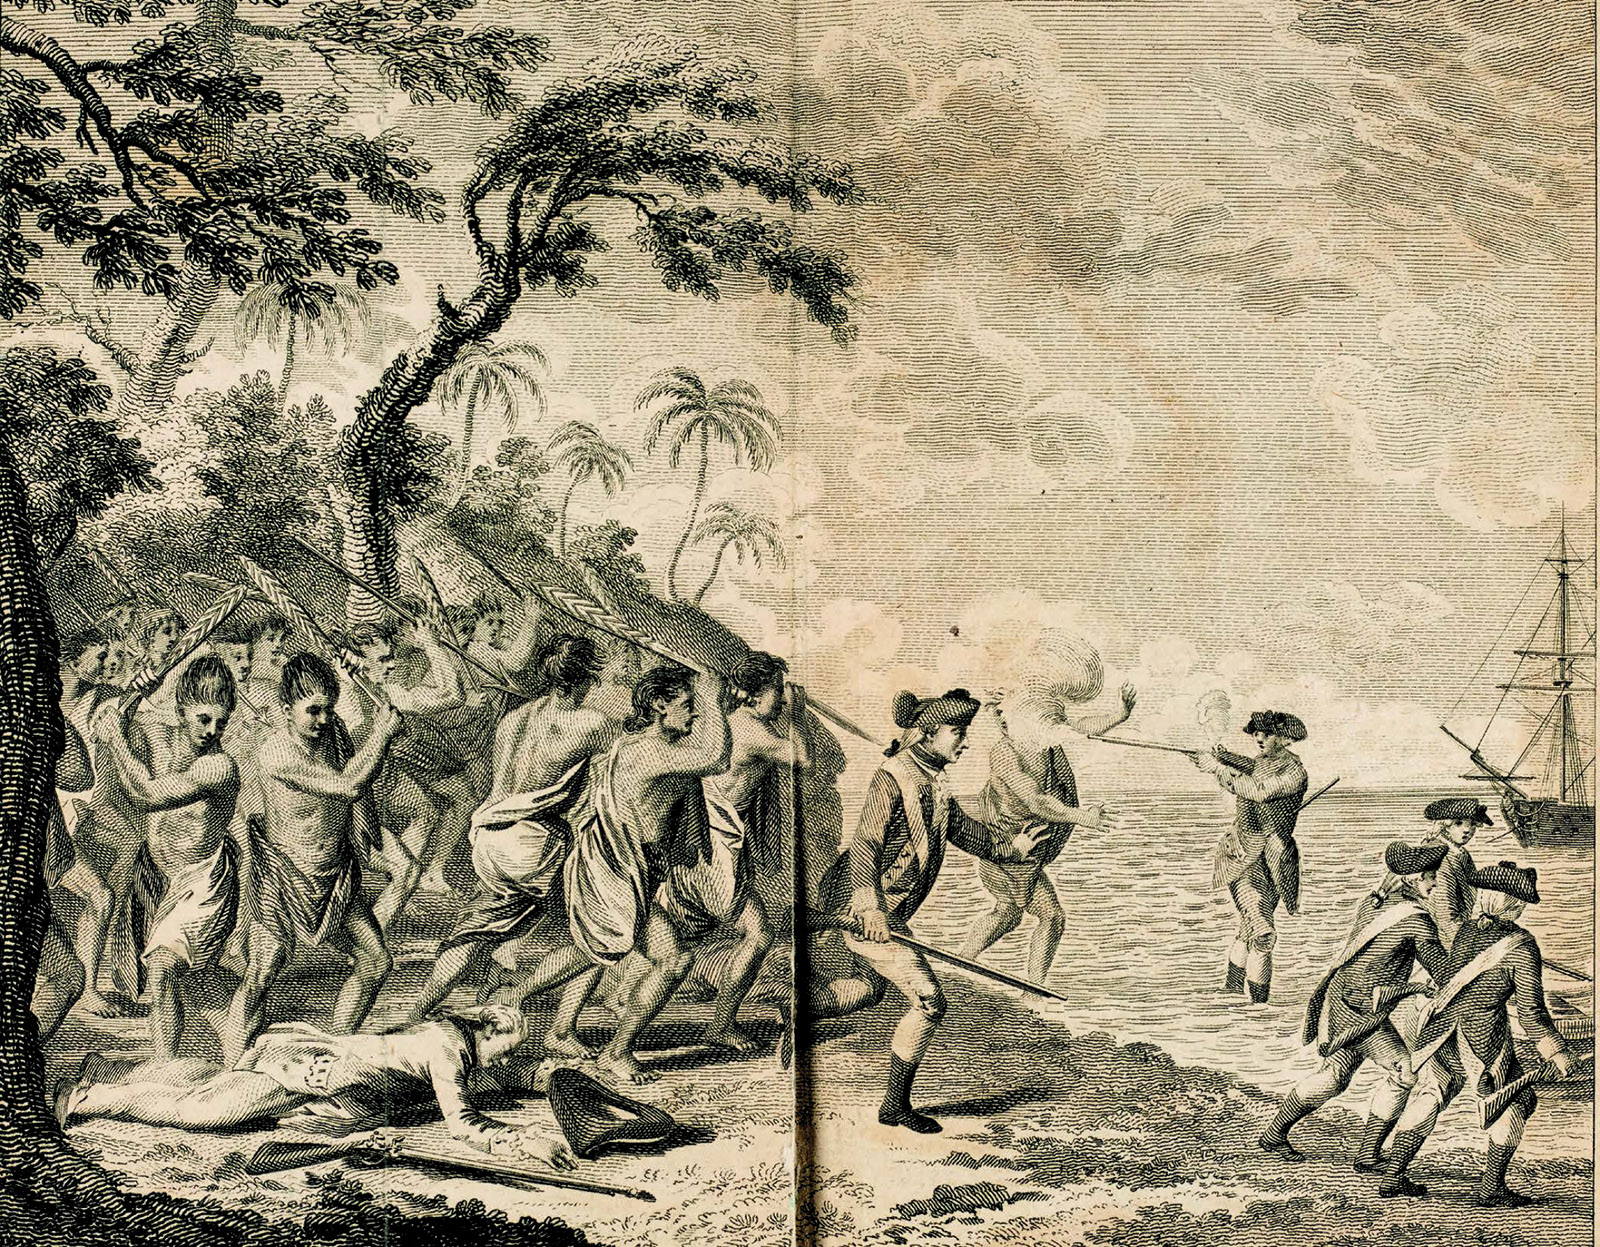 The death of Captain Cook on February 15, 1779, at Kealakekua Bay in Hawaii; engraving from John Rickman's Journal of Captain Cook's Last Journey to the Pacific Ocean on Discovery (1781). It was the first image of Cook's death to be published.